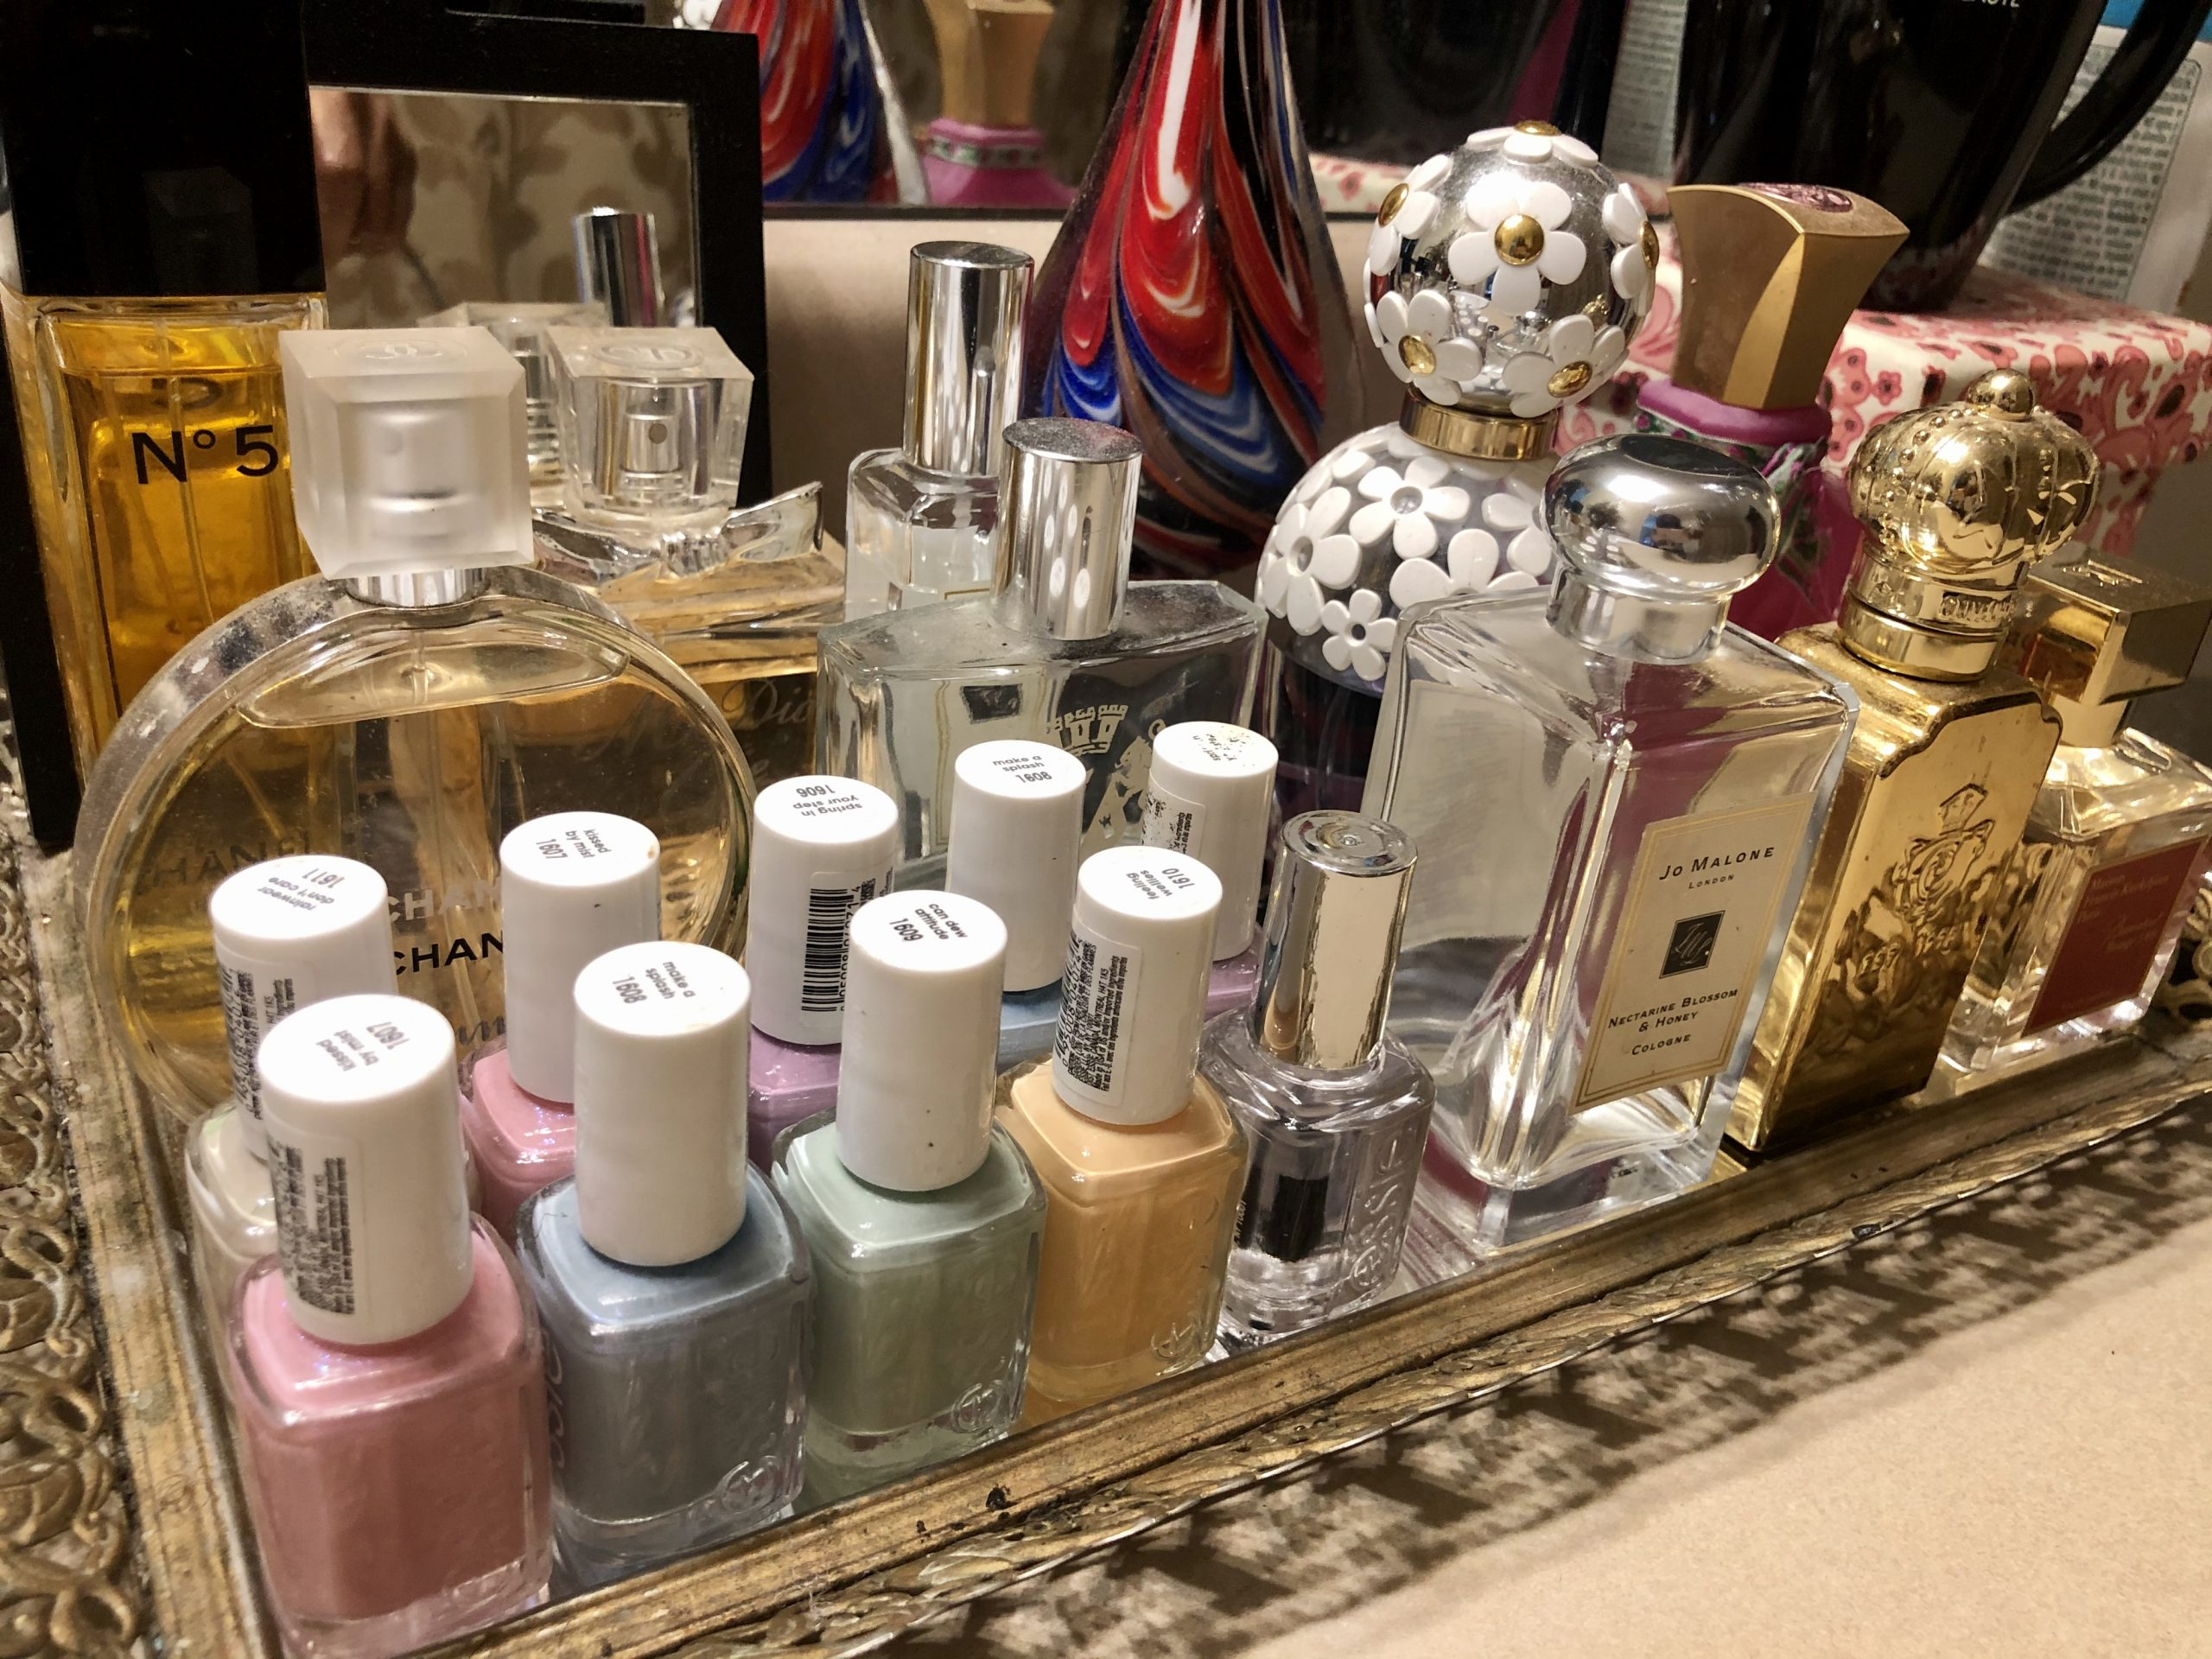 My Top Five Recommended Parfums